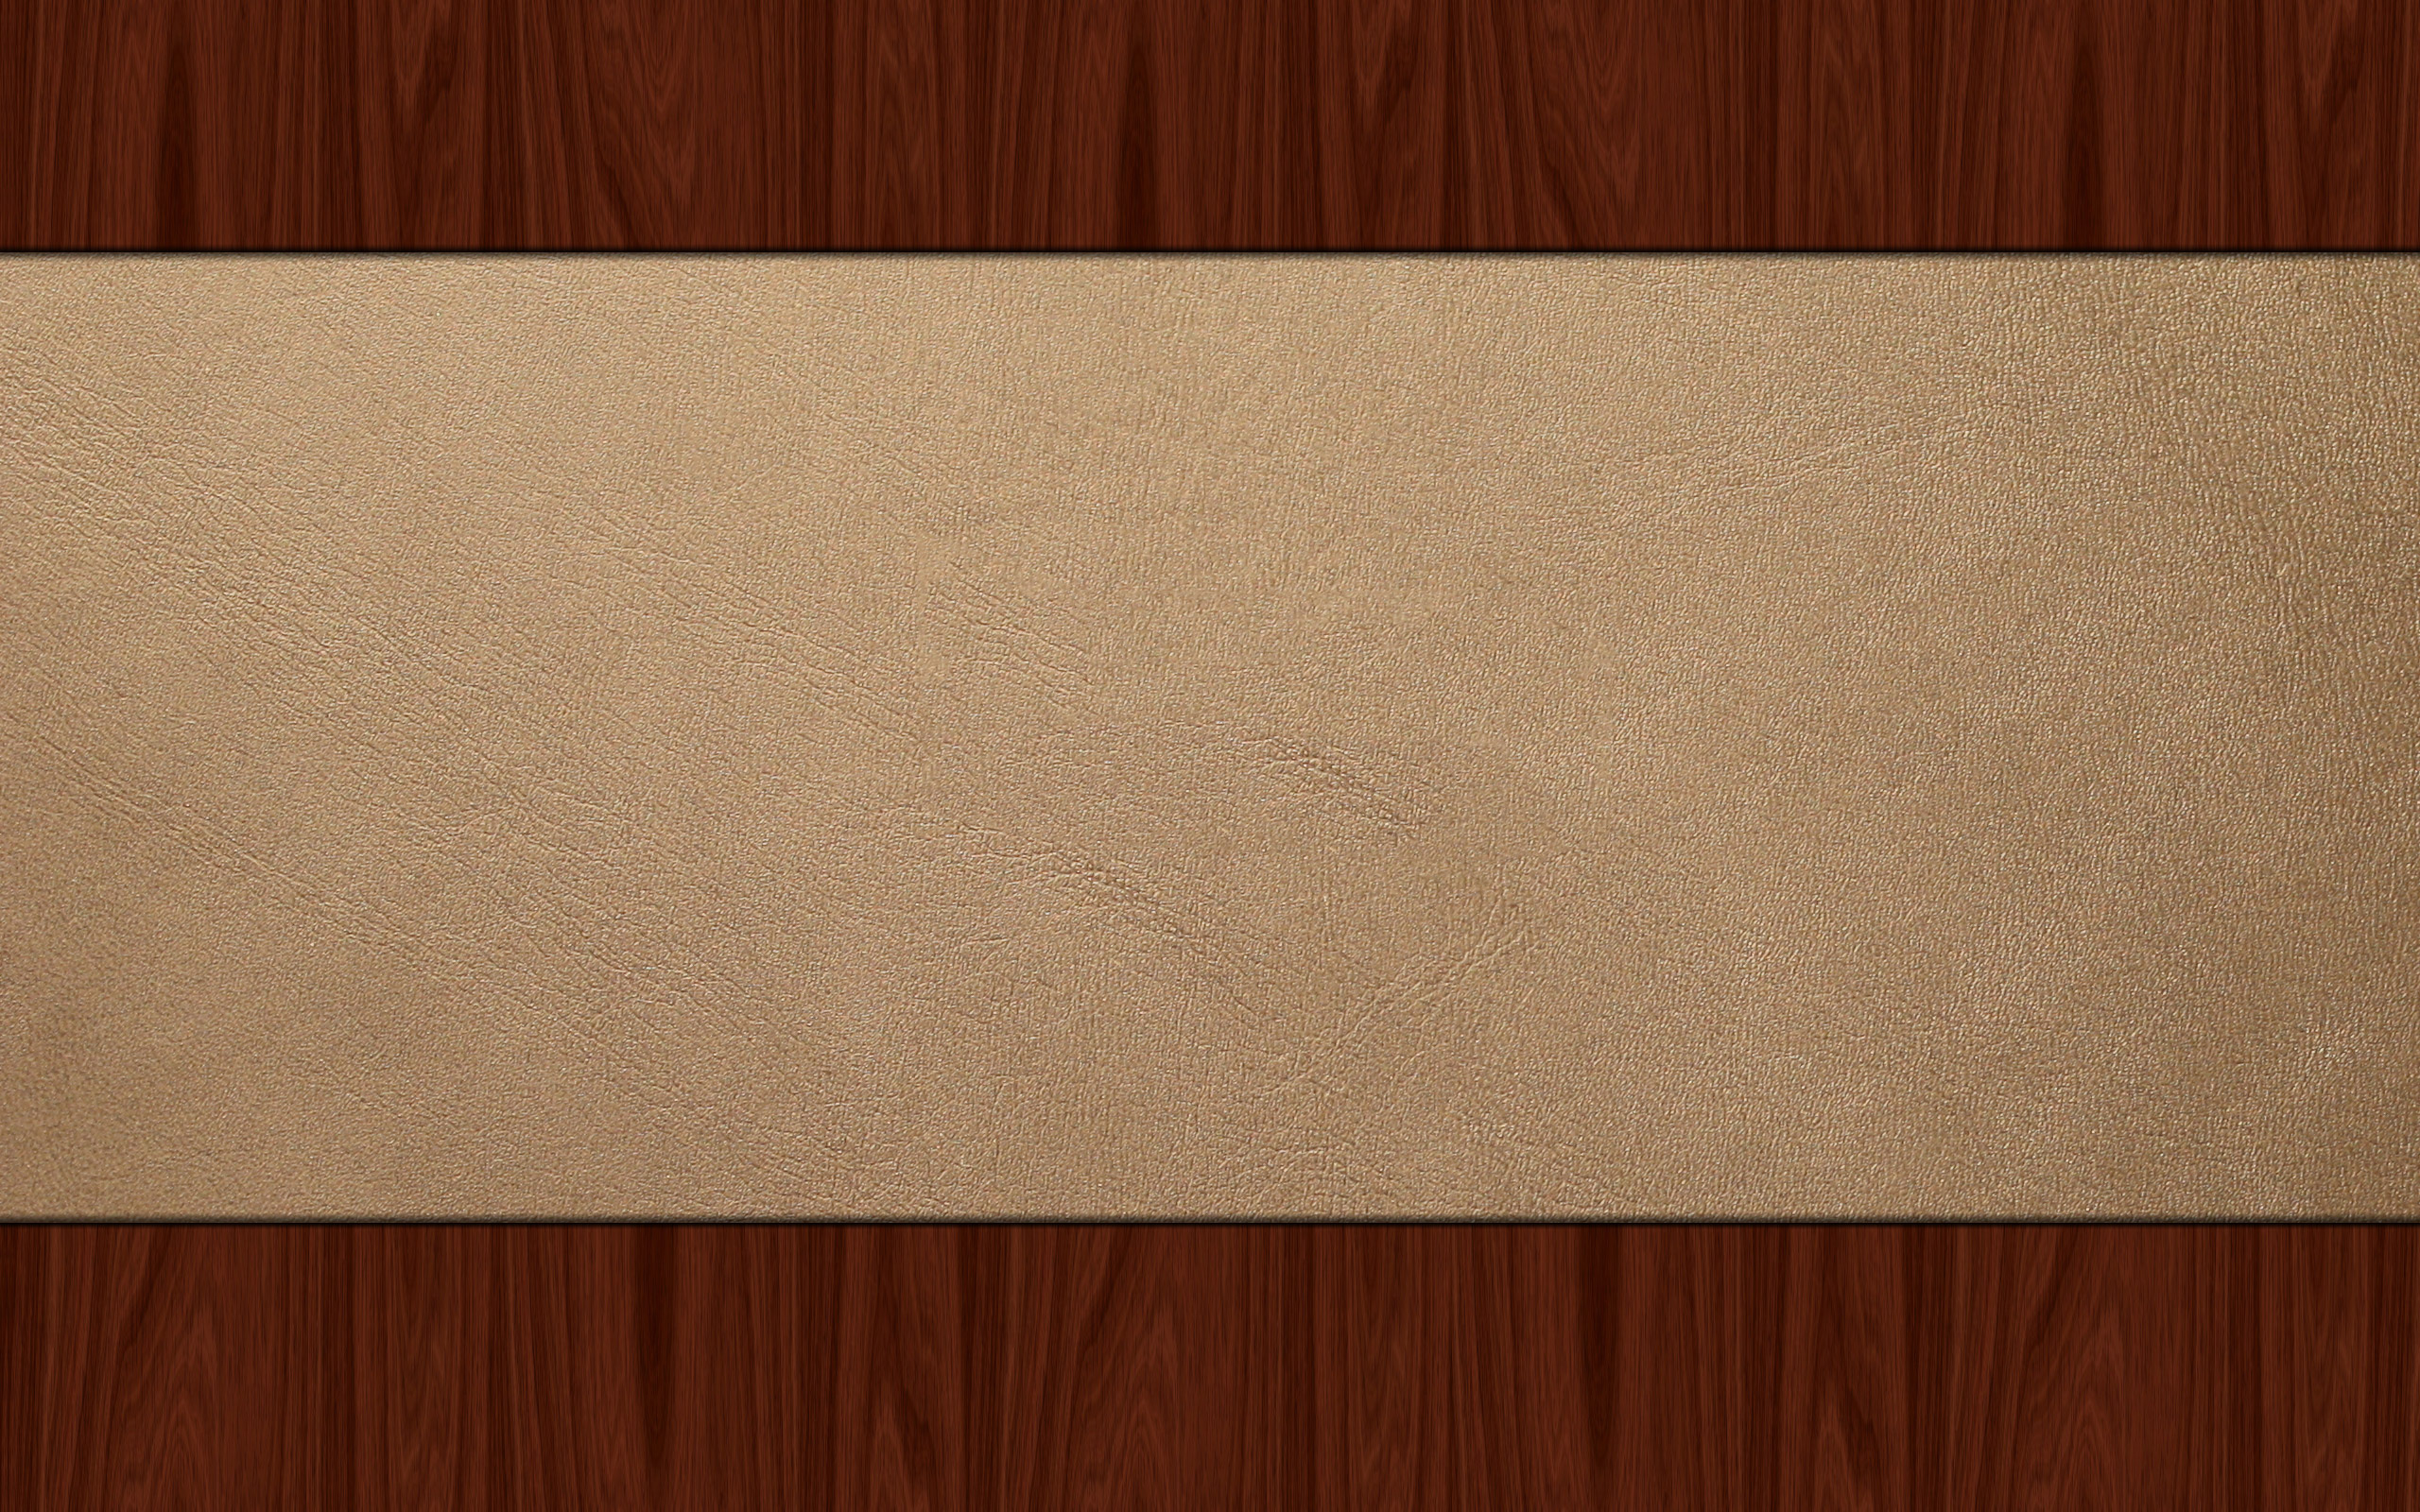 Leather minimalistic wood